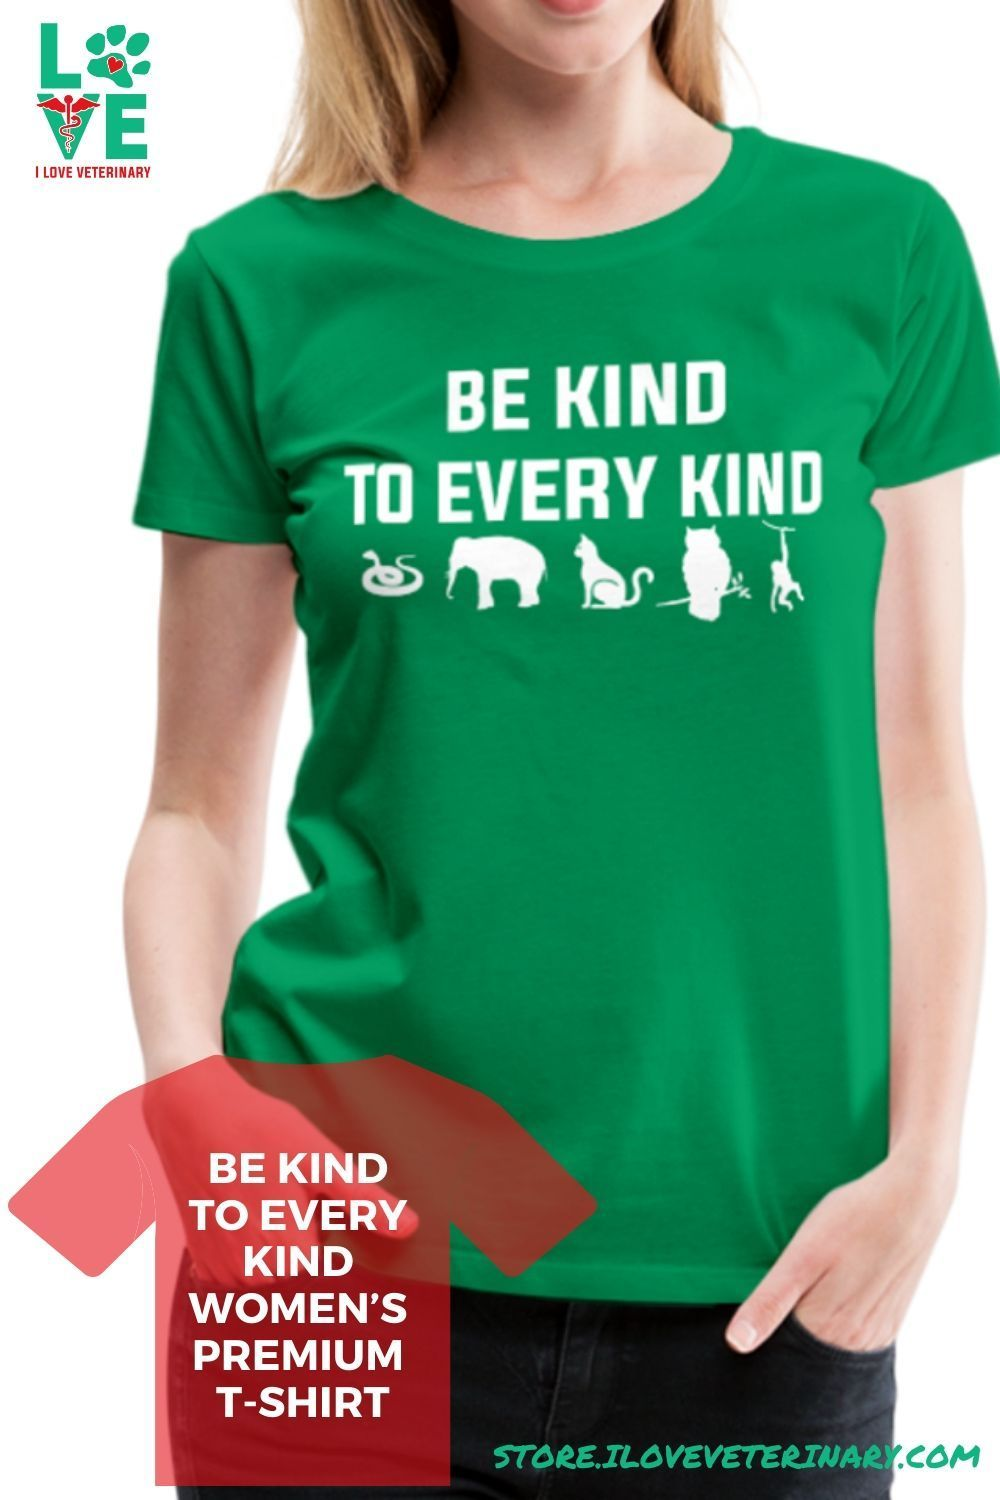 Be kind to every kind Women's Premium TShirt in 2020 T